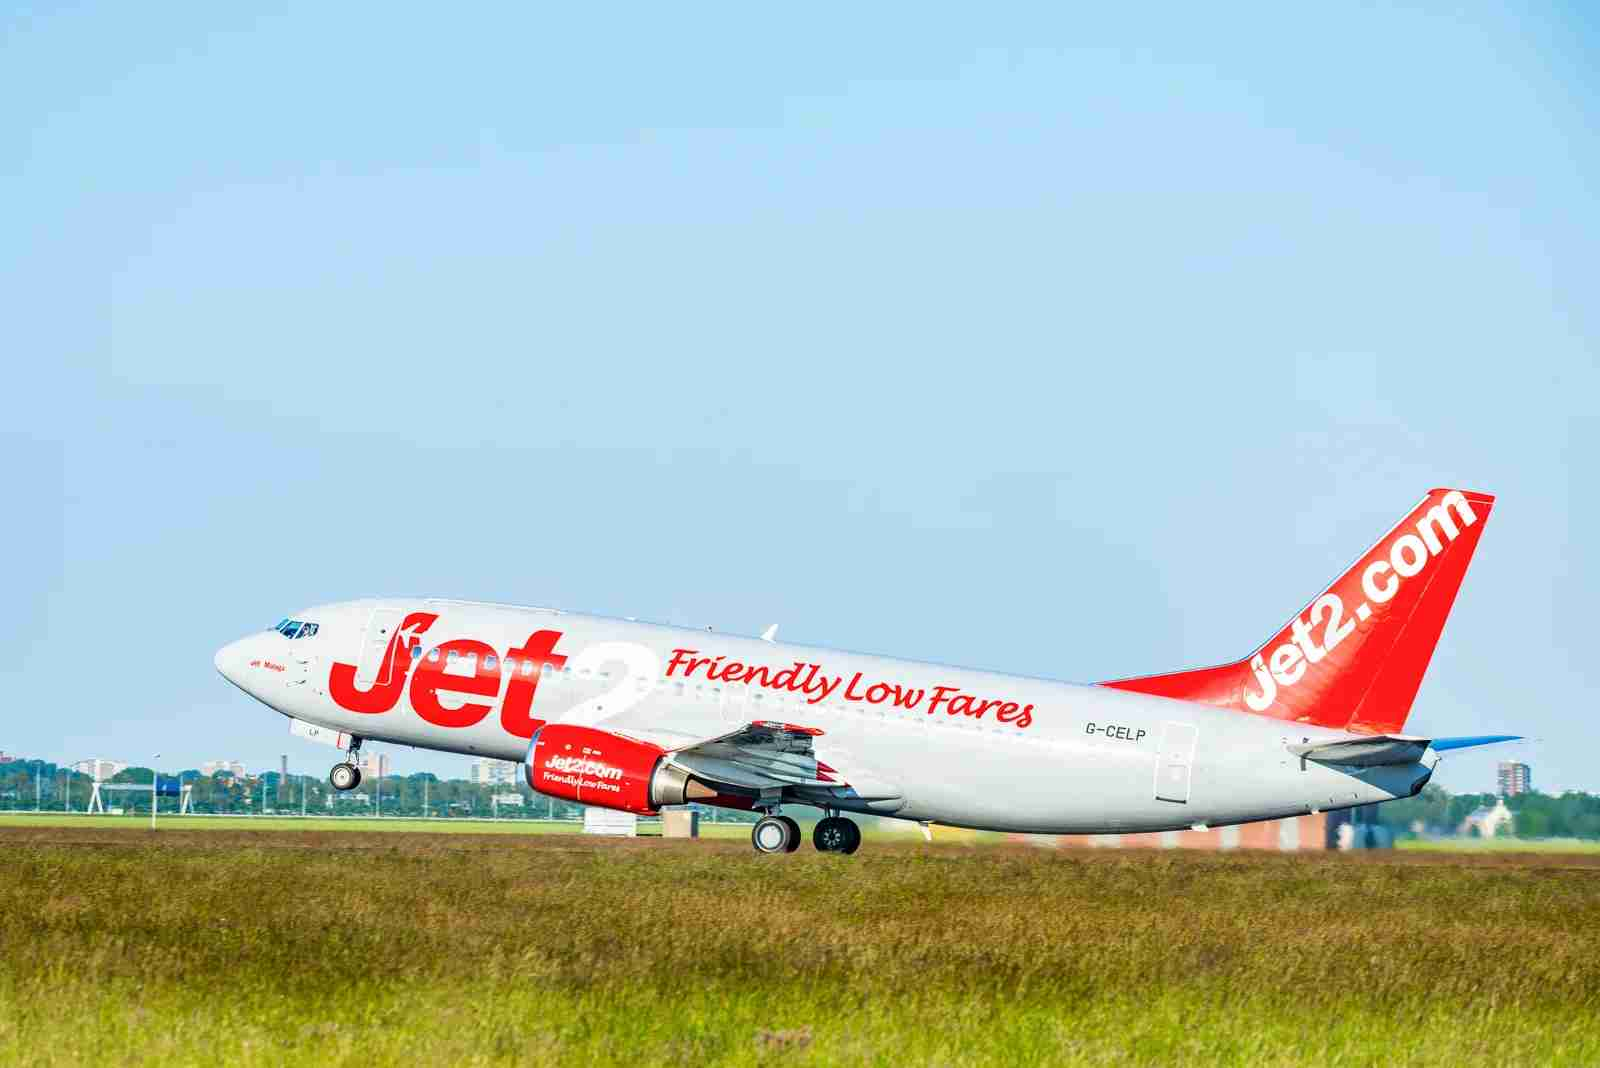 Jet2 Airlines doesn